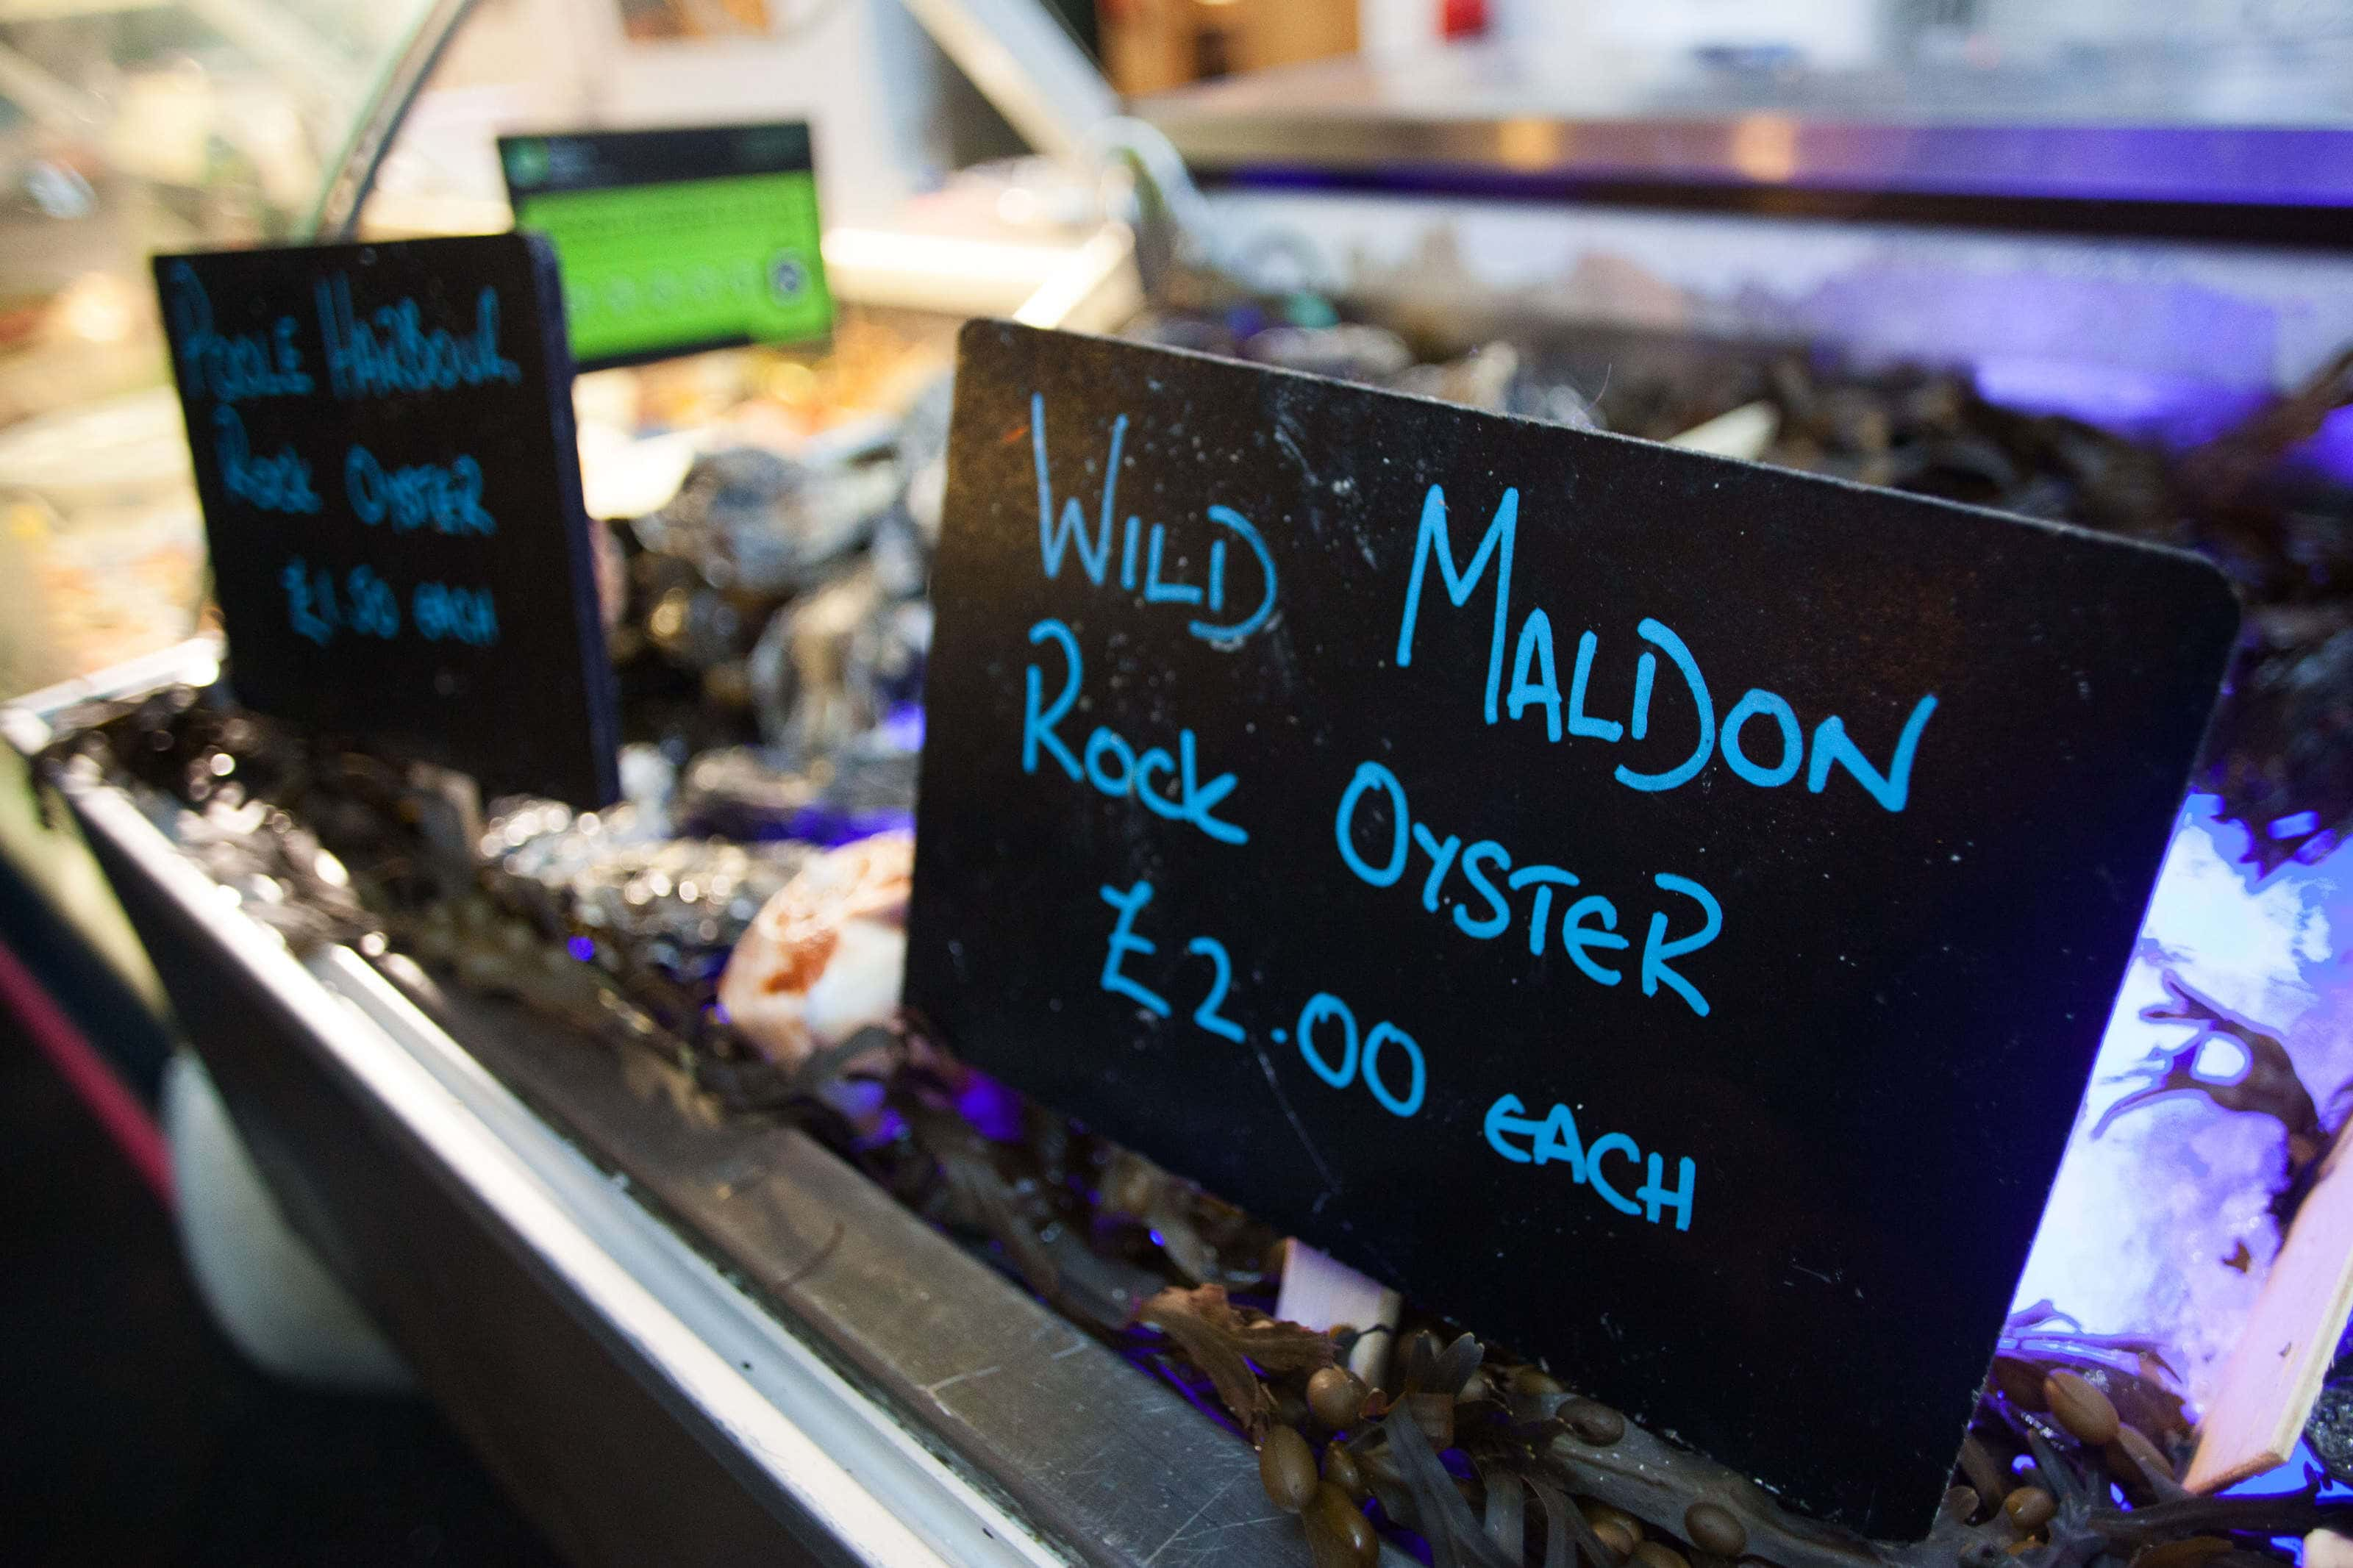 A sign for wild molden rock oysters